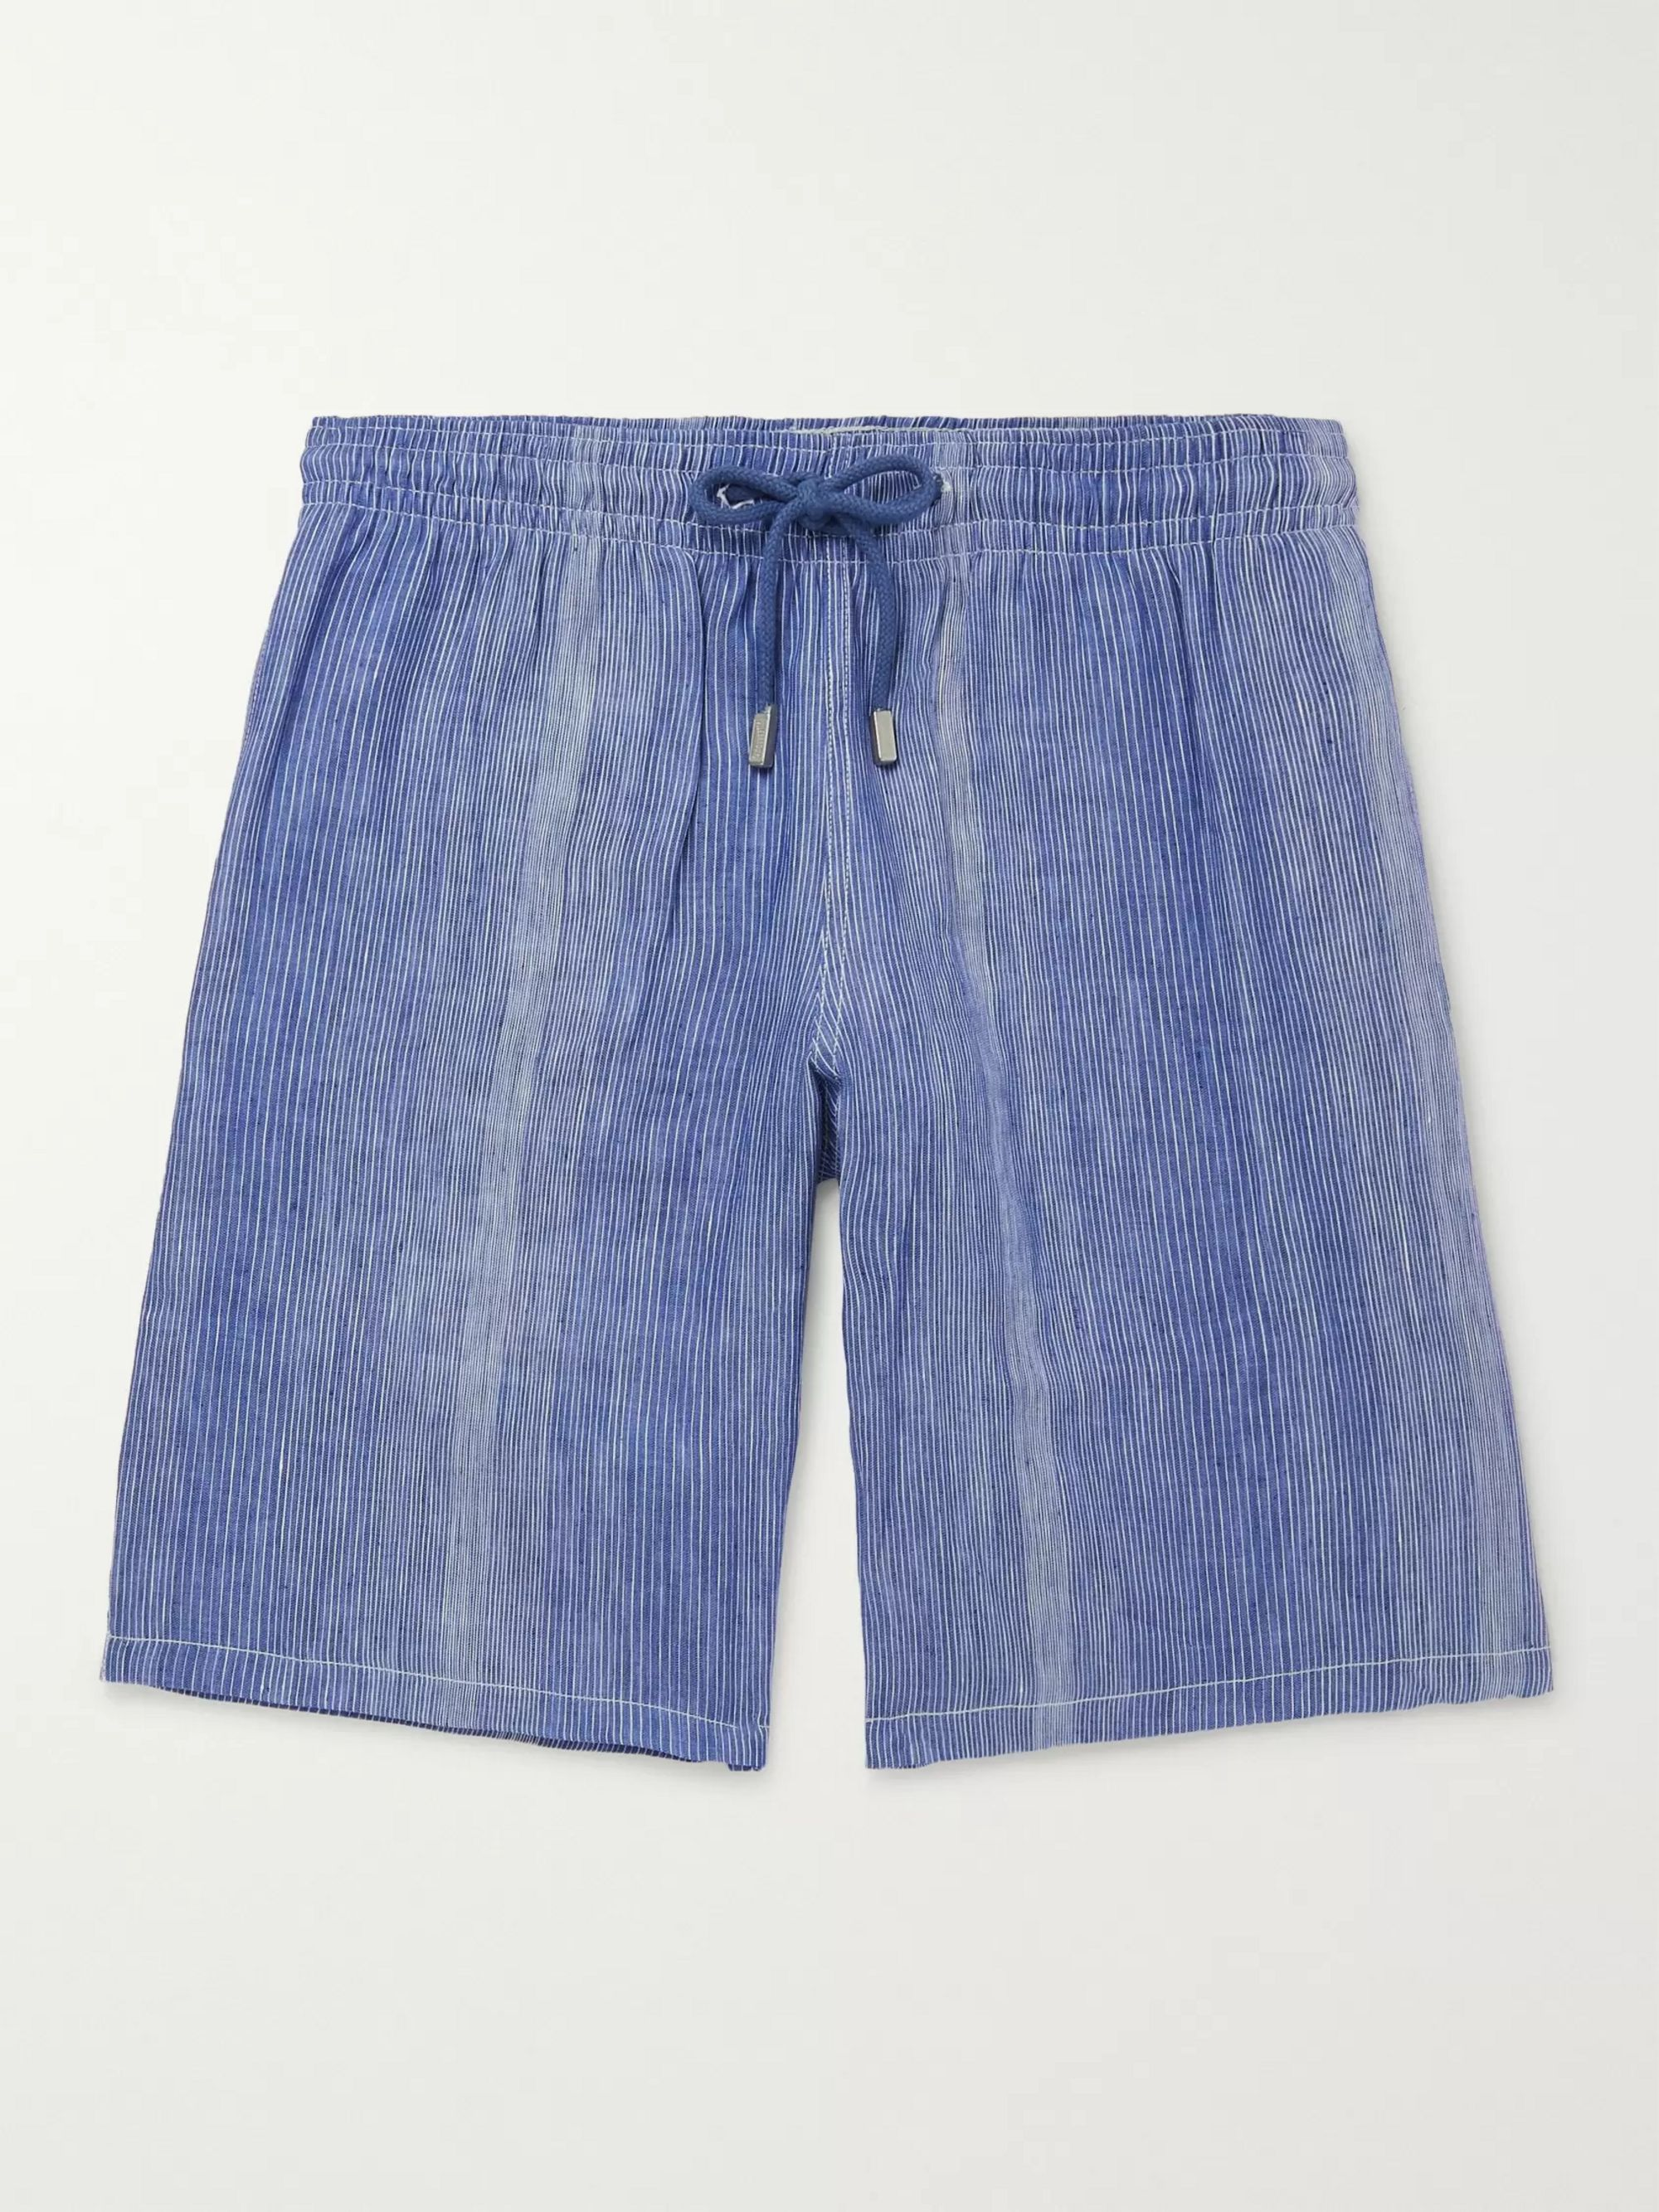 Vilebrequin Bolide Striped Linen and Cotton-Blend Drawstring Shorts